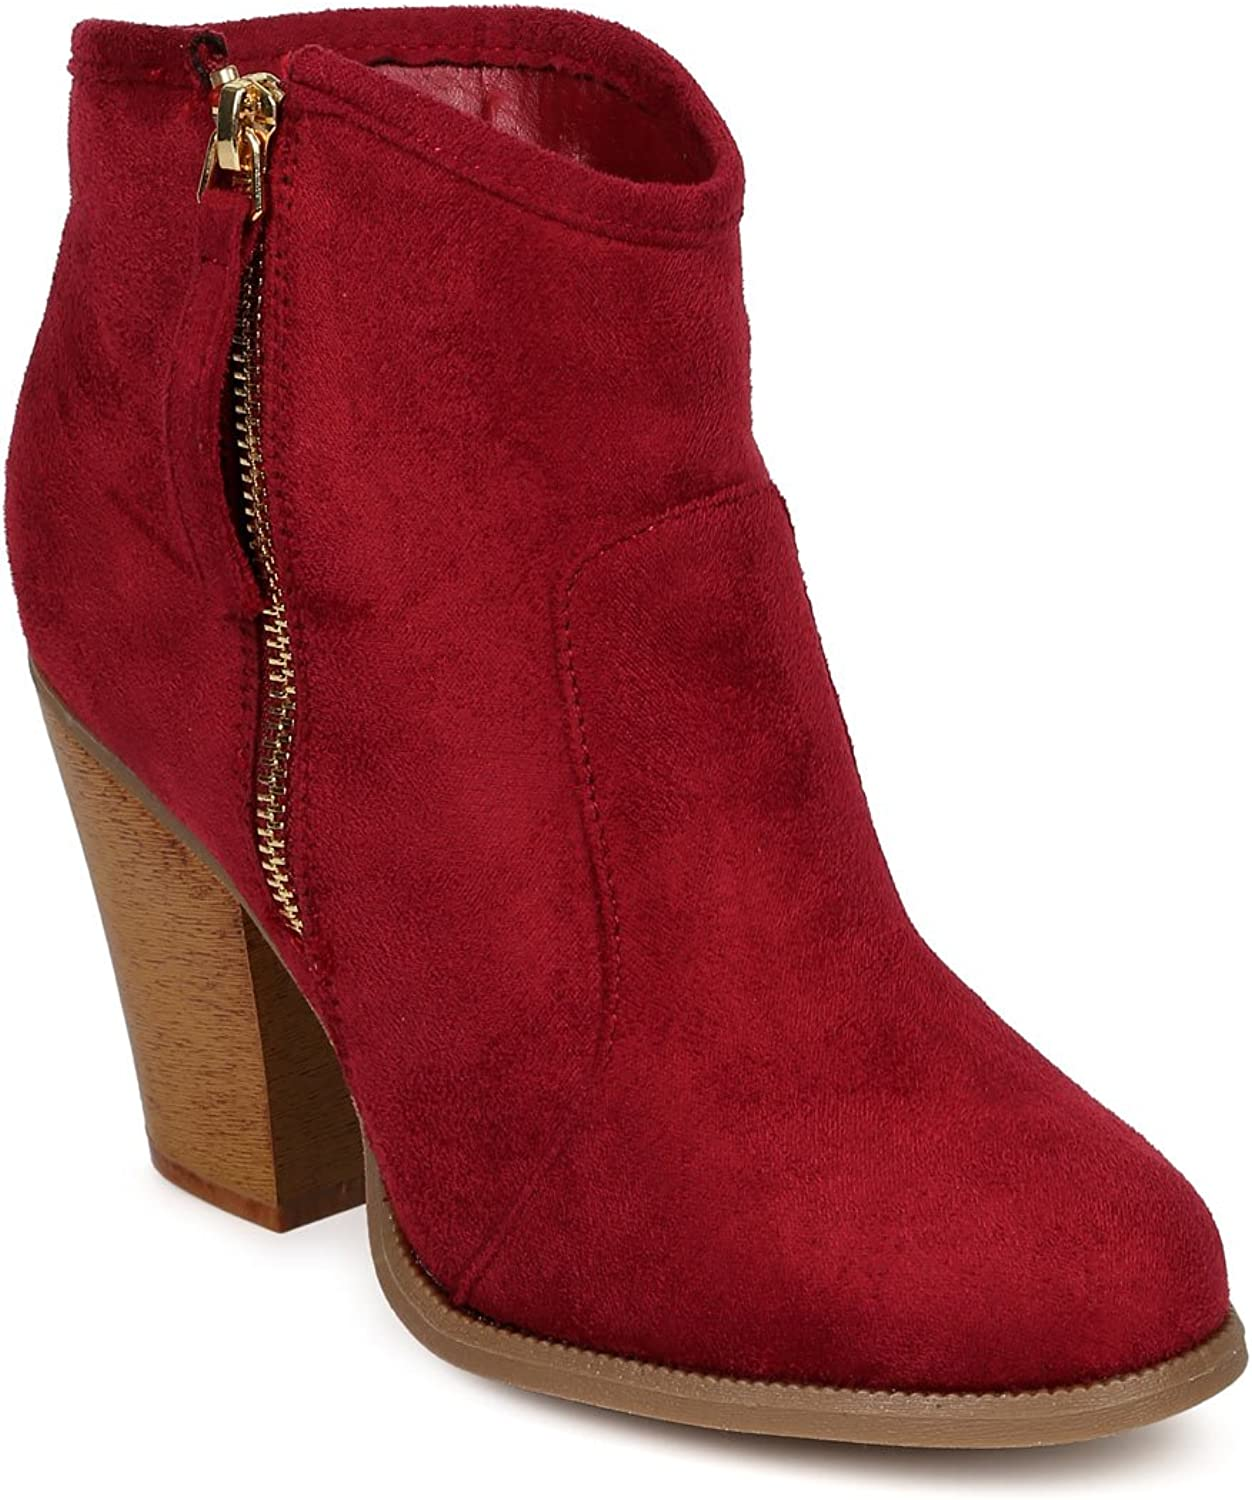 Liliana CK46 Women Suede Round Toe Chunky Heel Ankle Riding Bootie - Wine